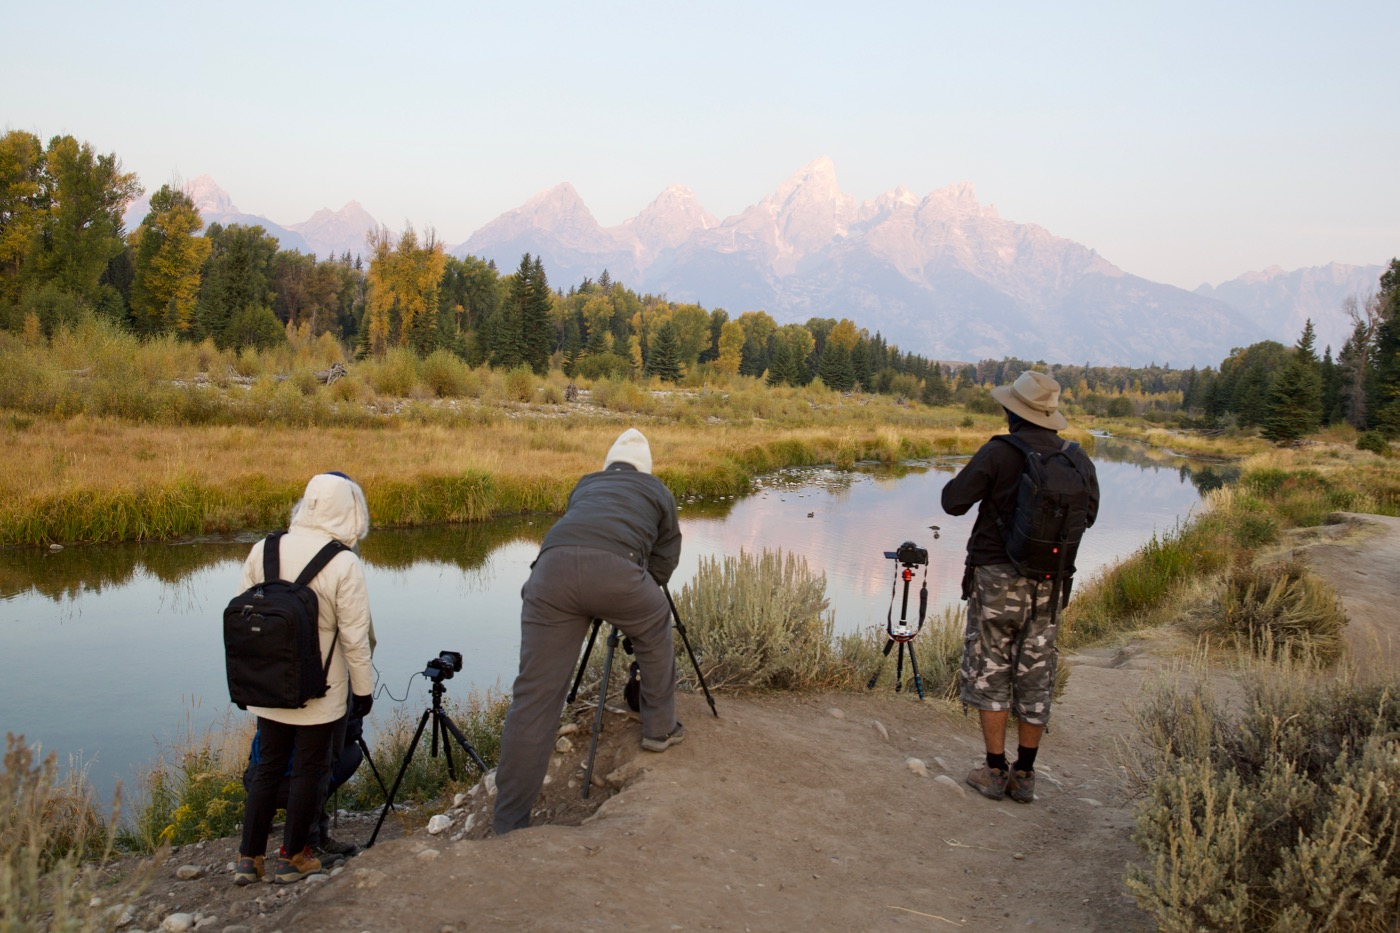 Photographers waiting for sunrise at Schwabacher Landing, Tetons, Wyoming